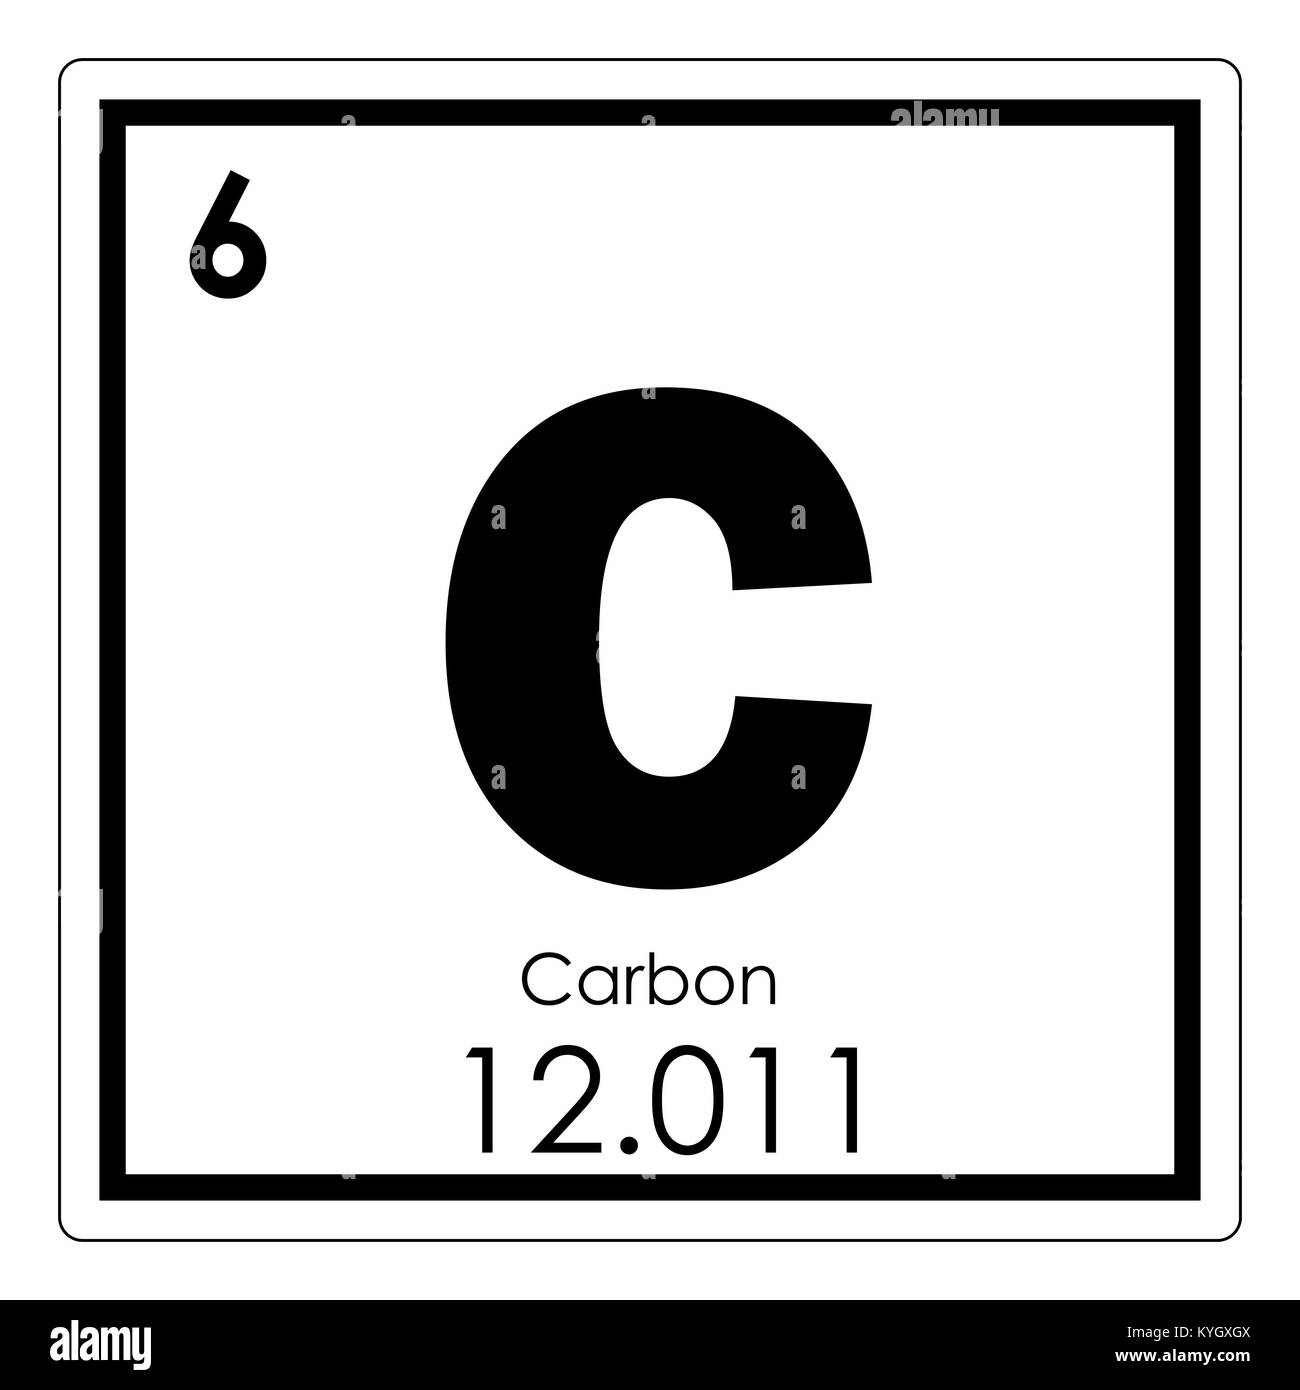 Carbon chemical element periodic table science symbol stock photo carbon chemical element periodic table science symbol urtaz Images